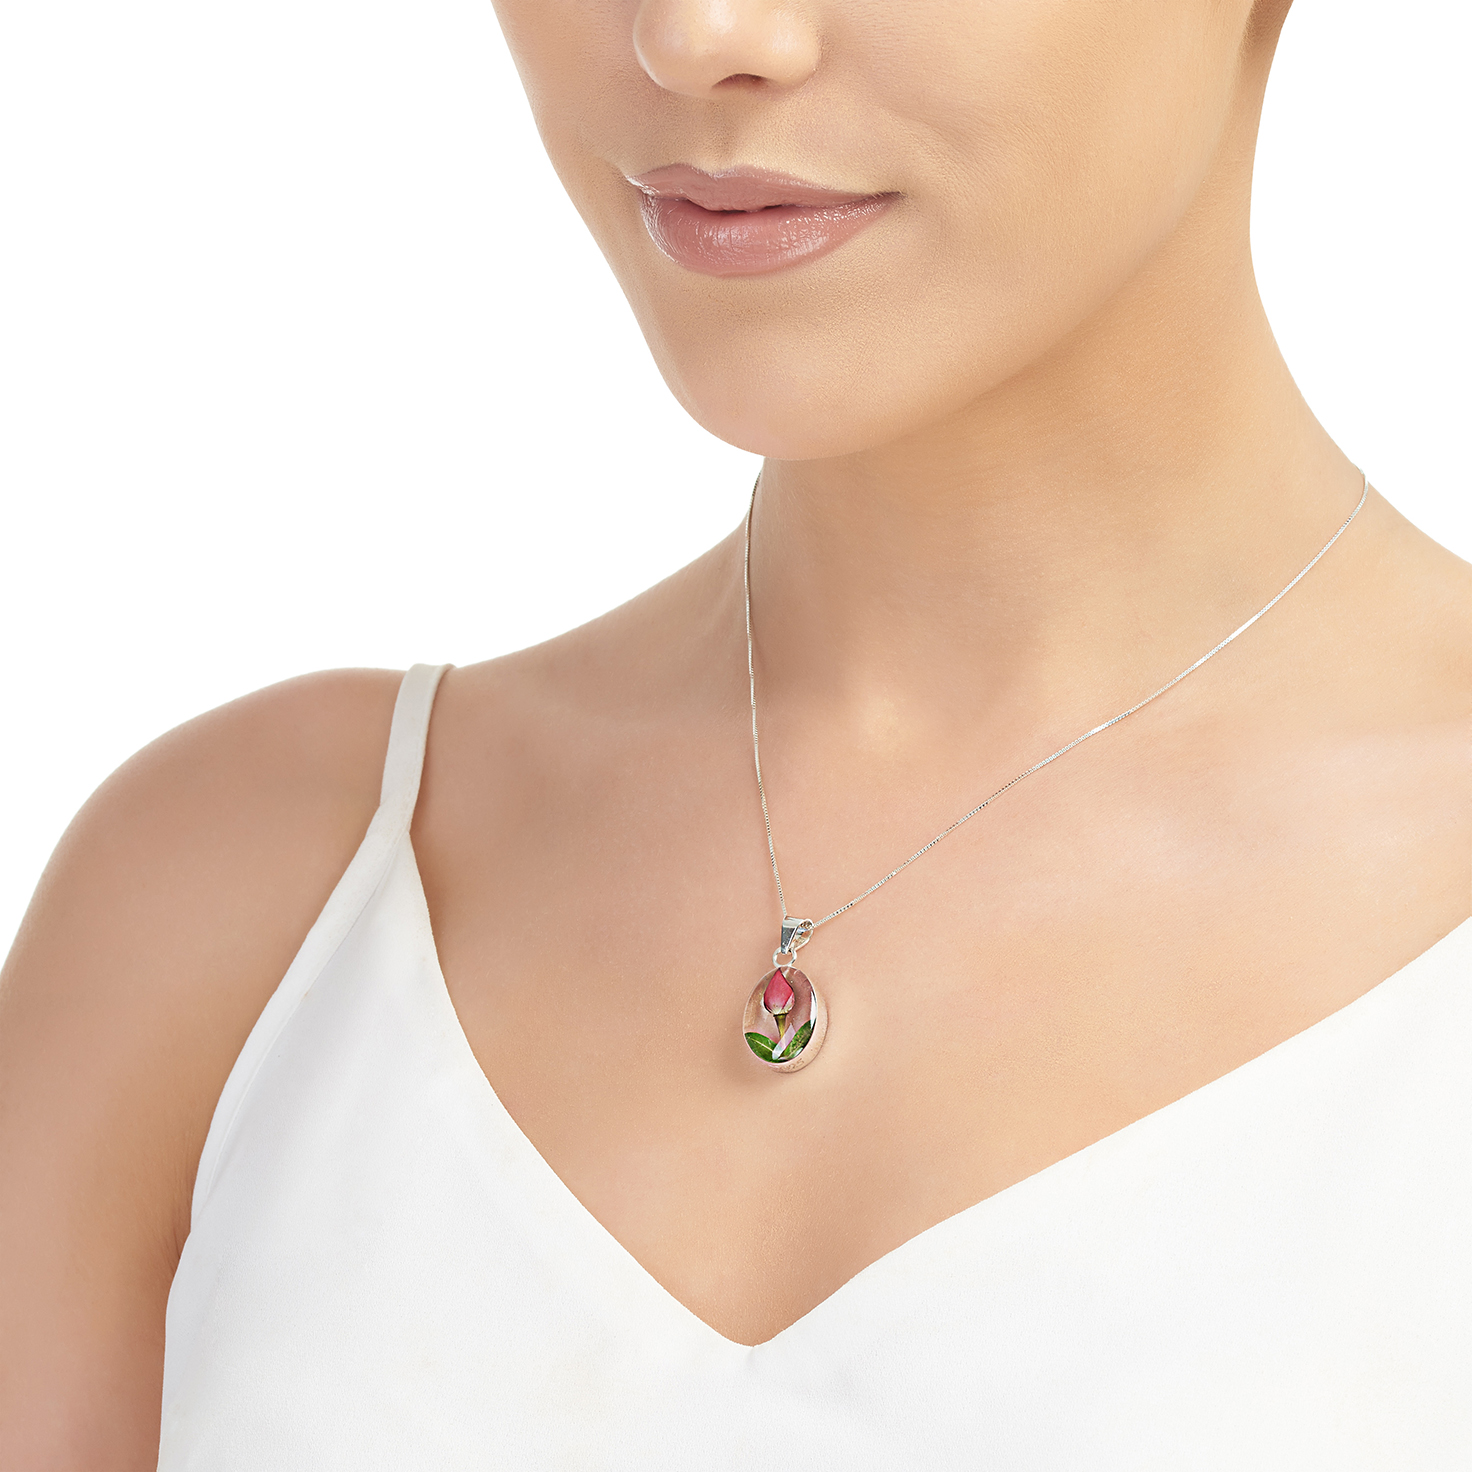 Shrieking Violet – Rose Bud Sterling Silver Oval Pendant Necklace in Box